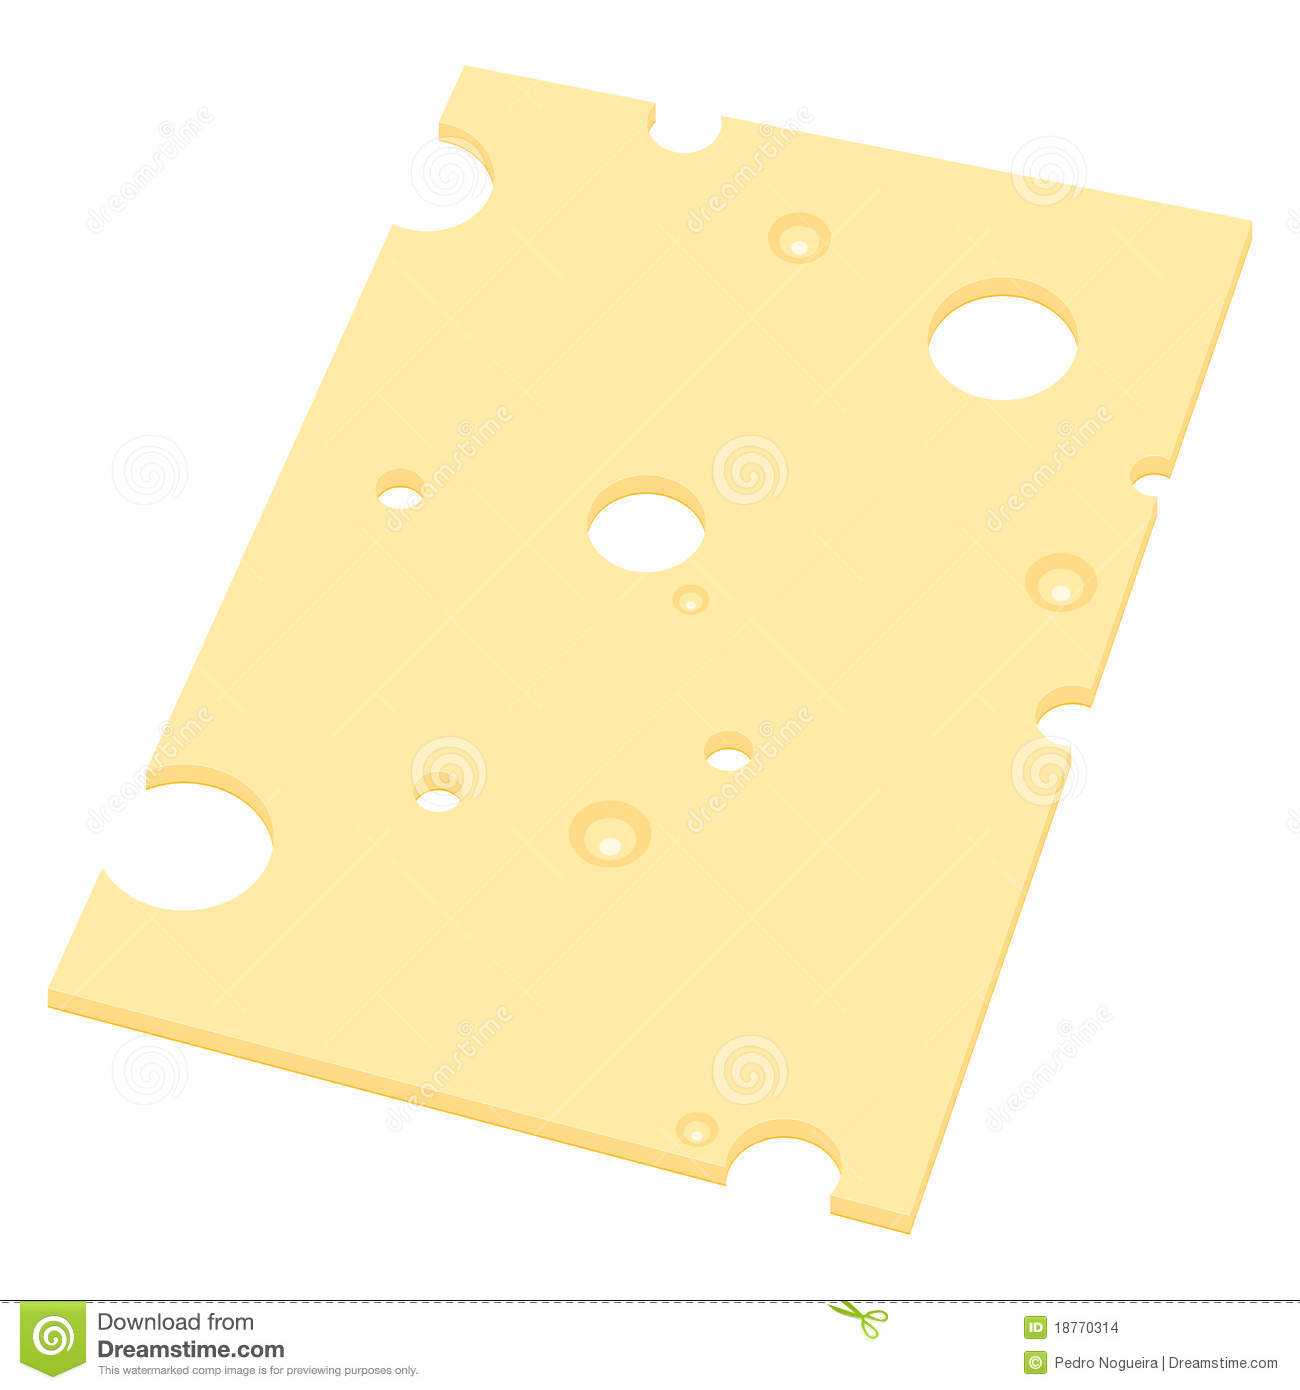 More similar stock images of ` Slice of cheese `